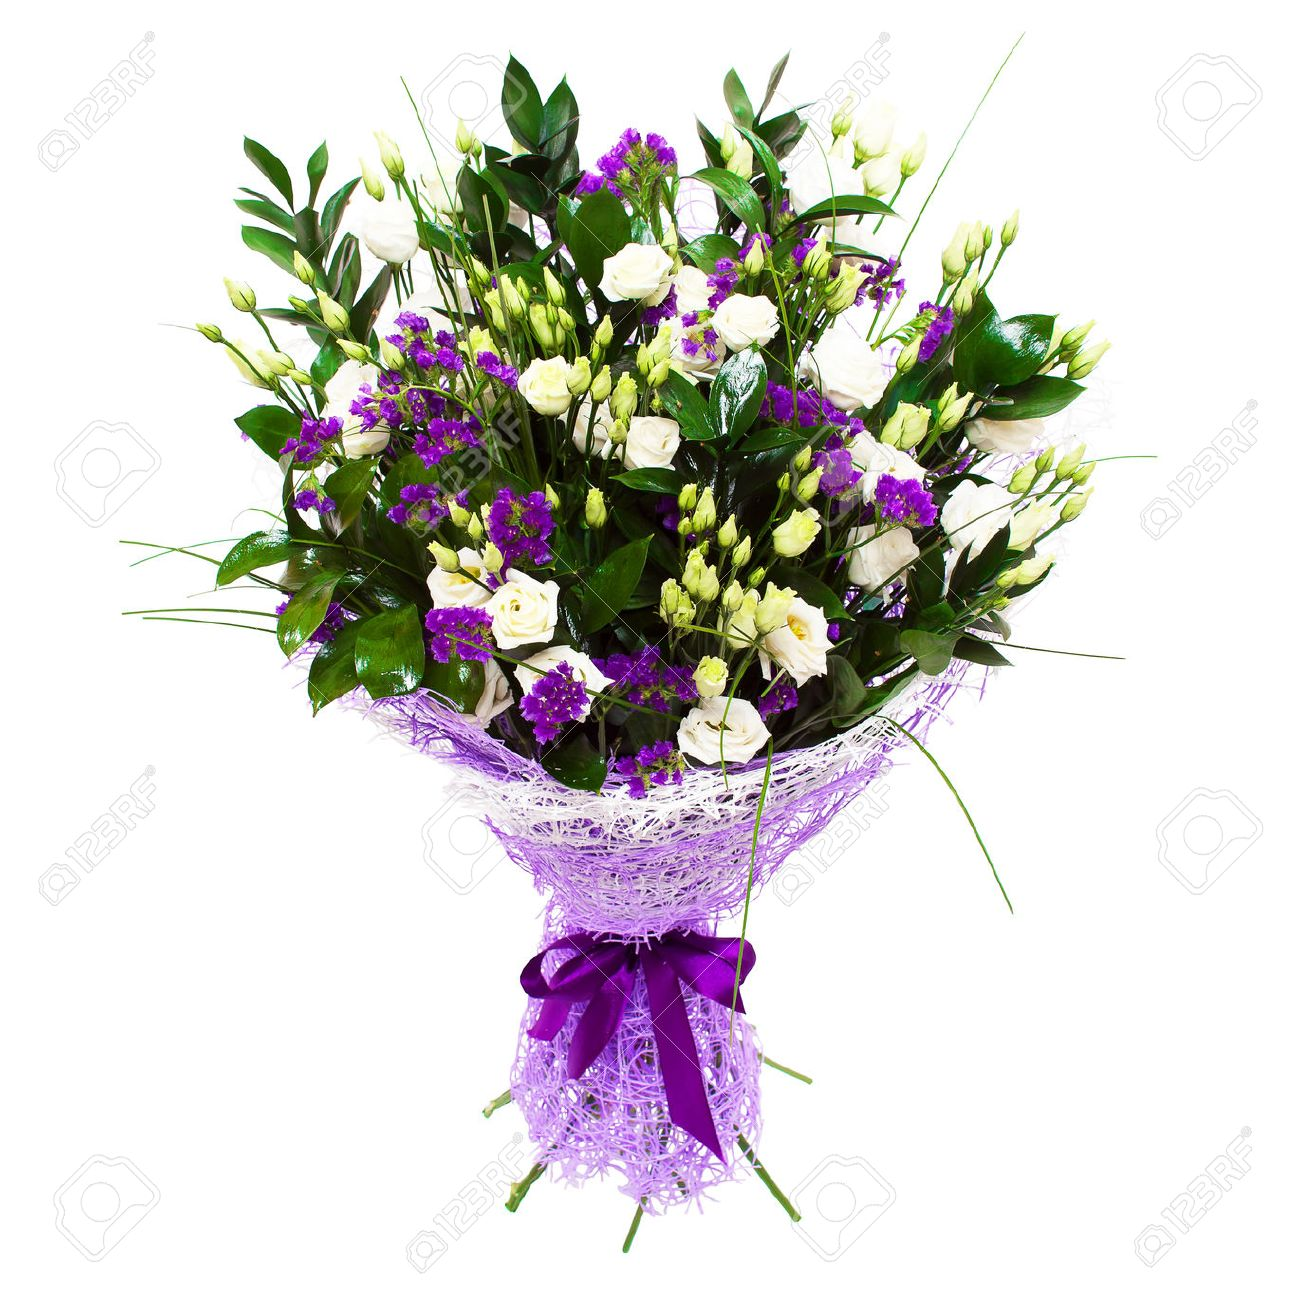 White small roses and violet purple flowers floral composition stock photo white small roses and violet purple flowers floral composition bouquet izmirmasajfo